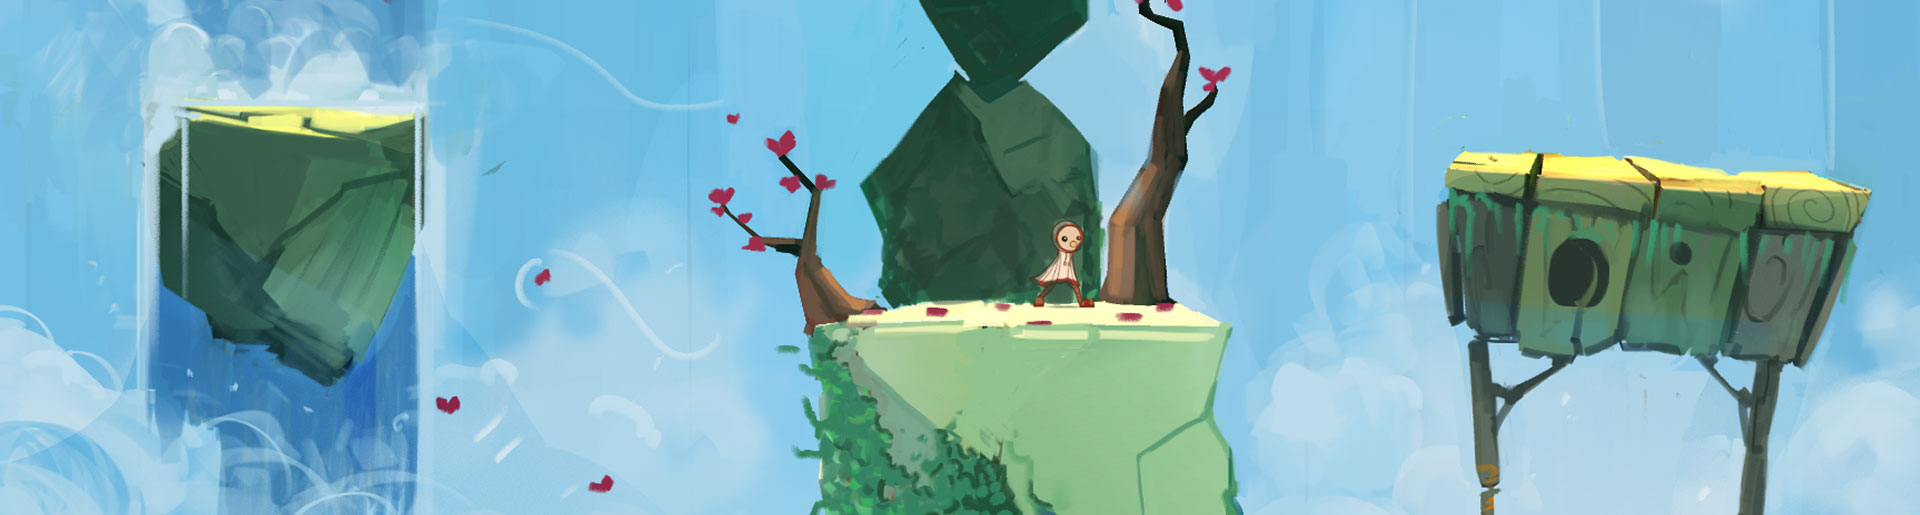 The Art and Technology Behind Shu's 2.5D Platforming